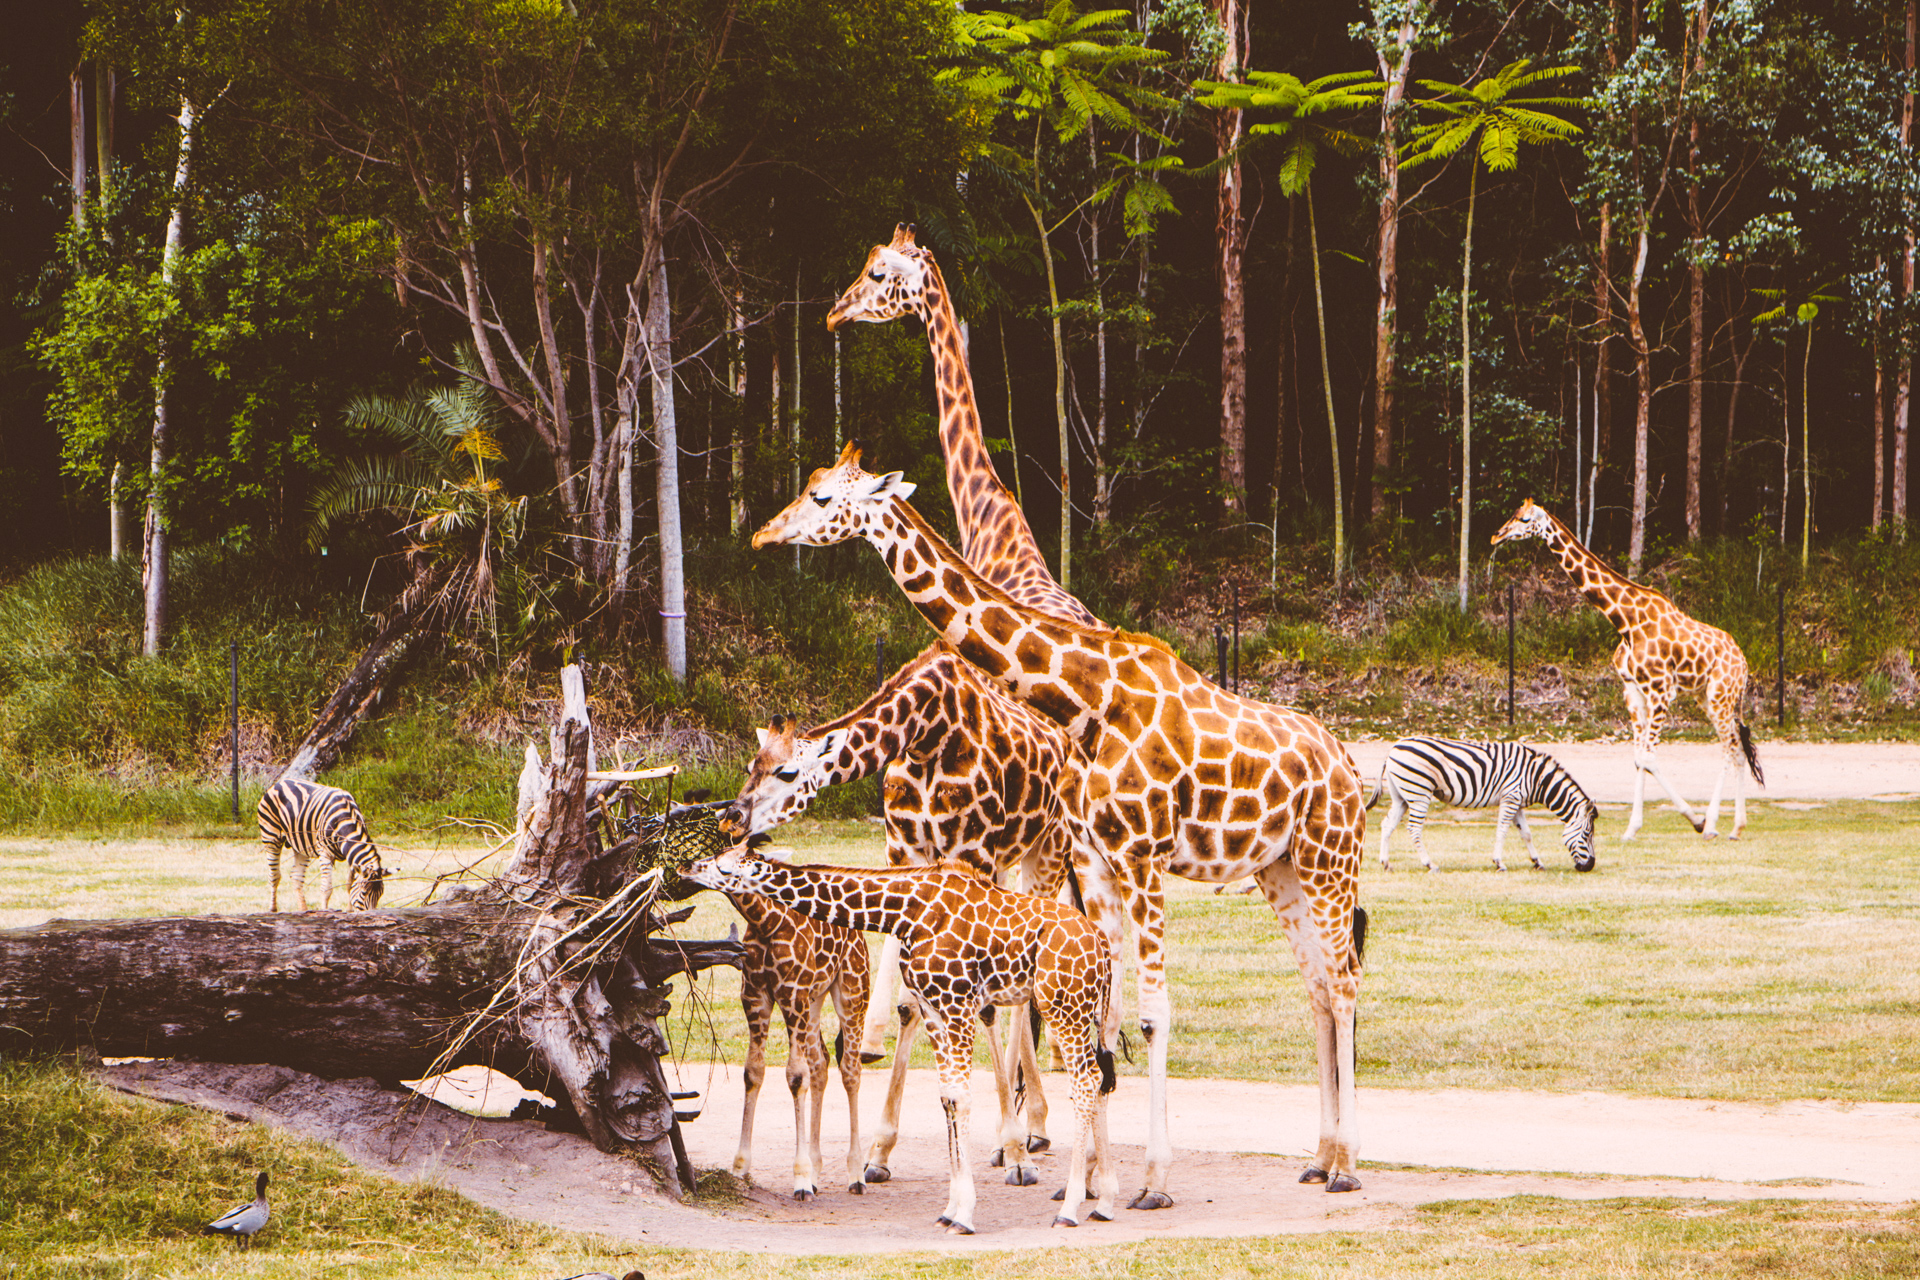 Giraffes at Australia Zoo